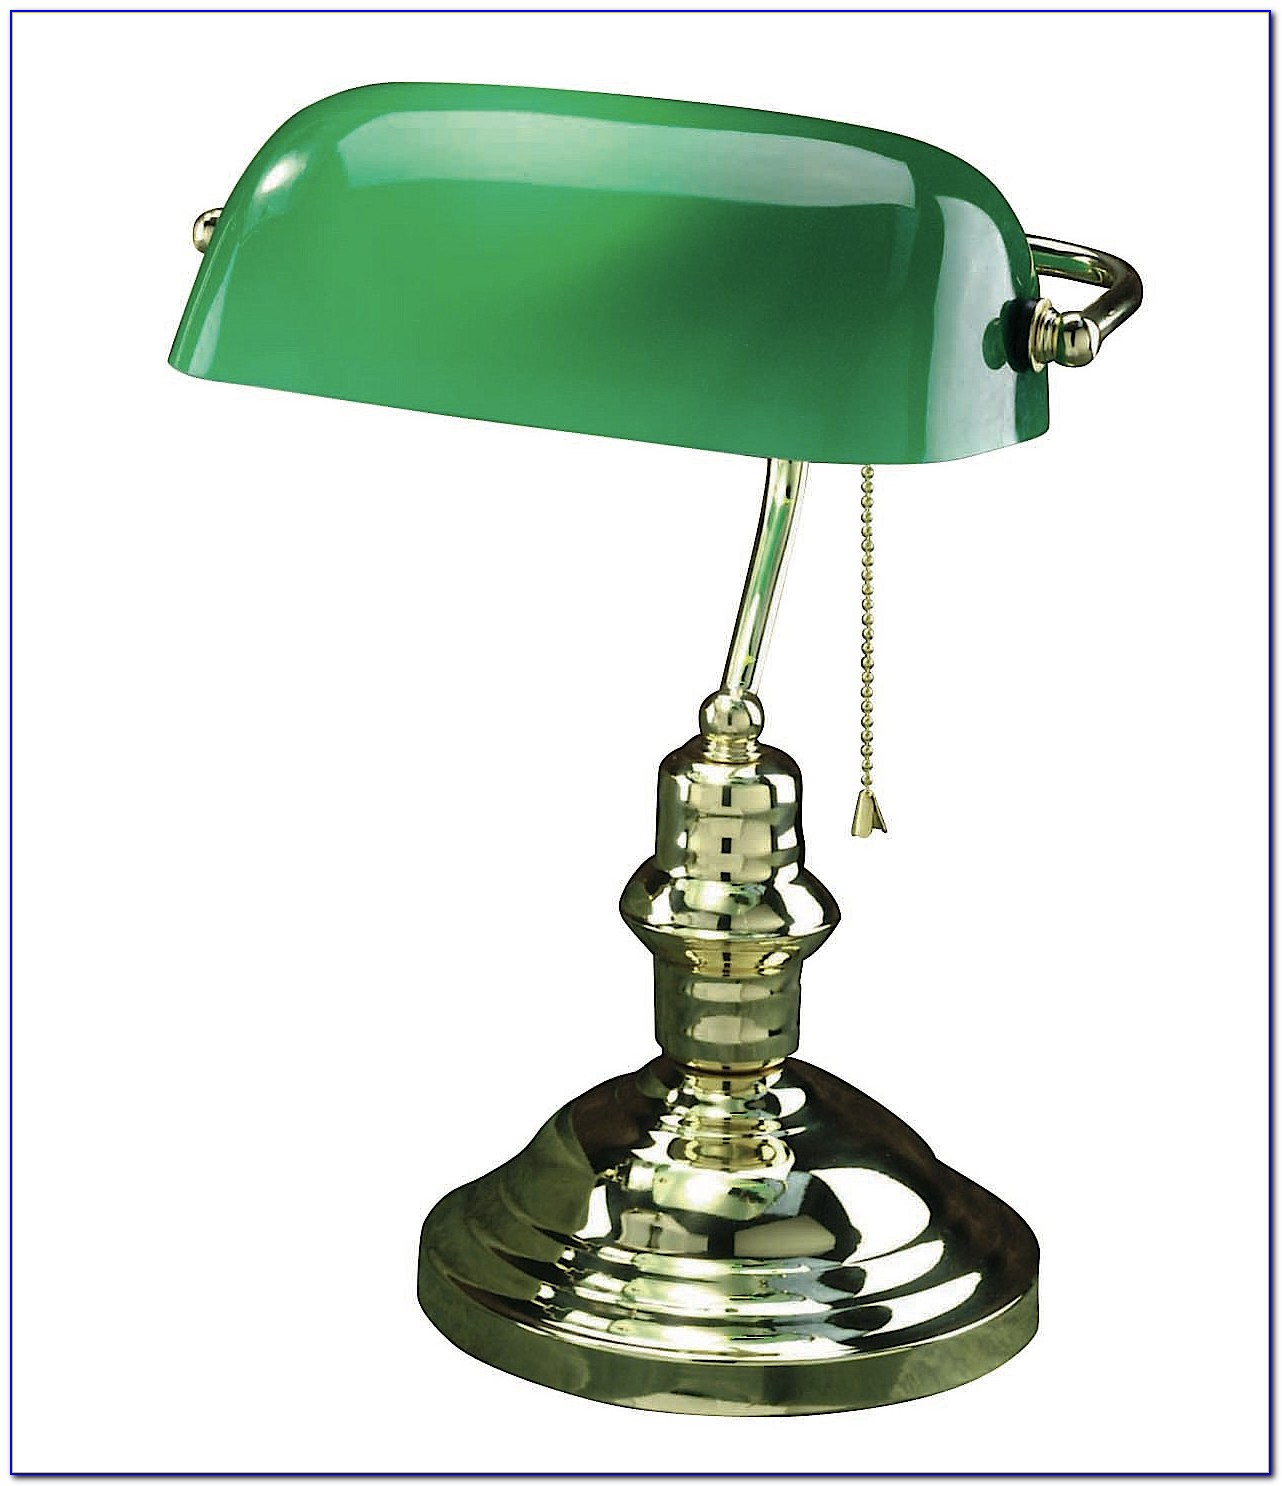 Bankers Style Desk Lamp With Green Glass Shade